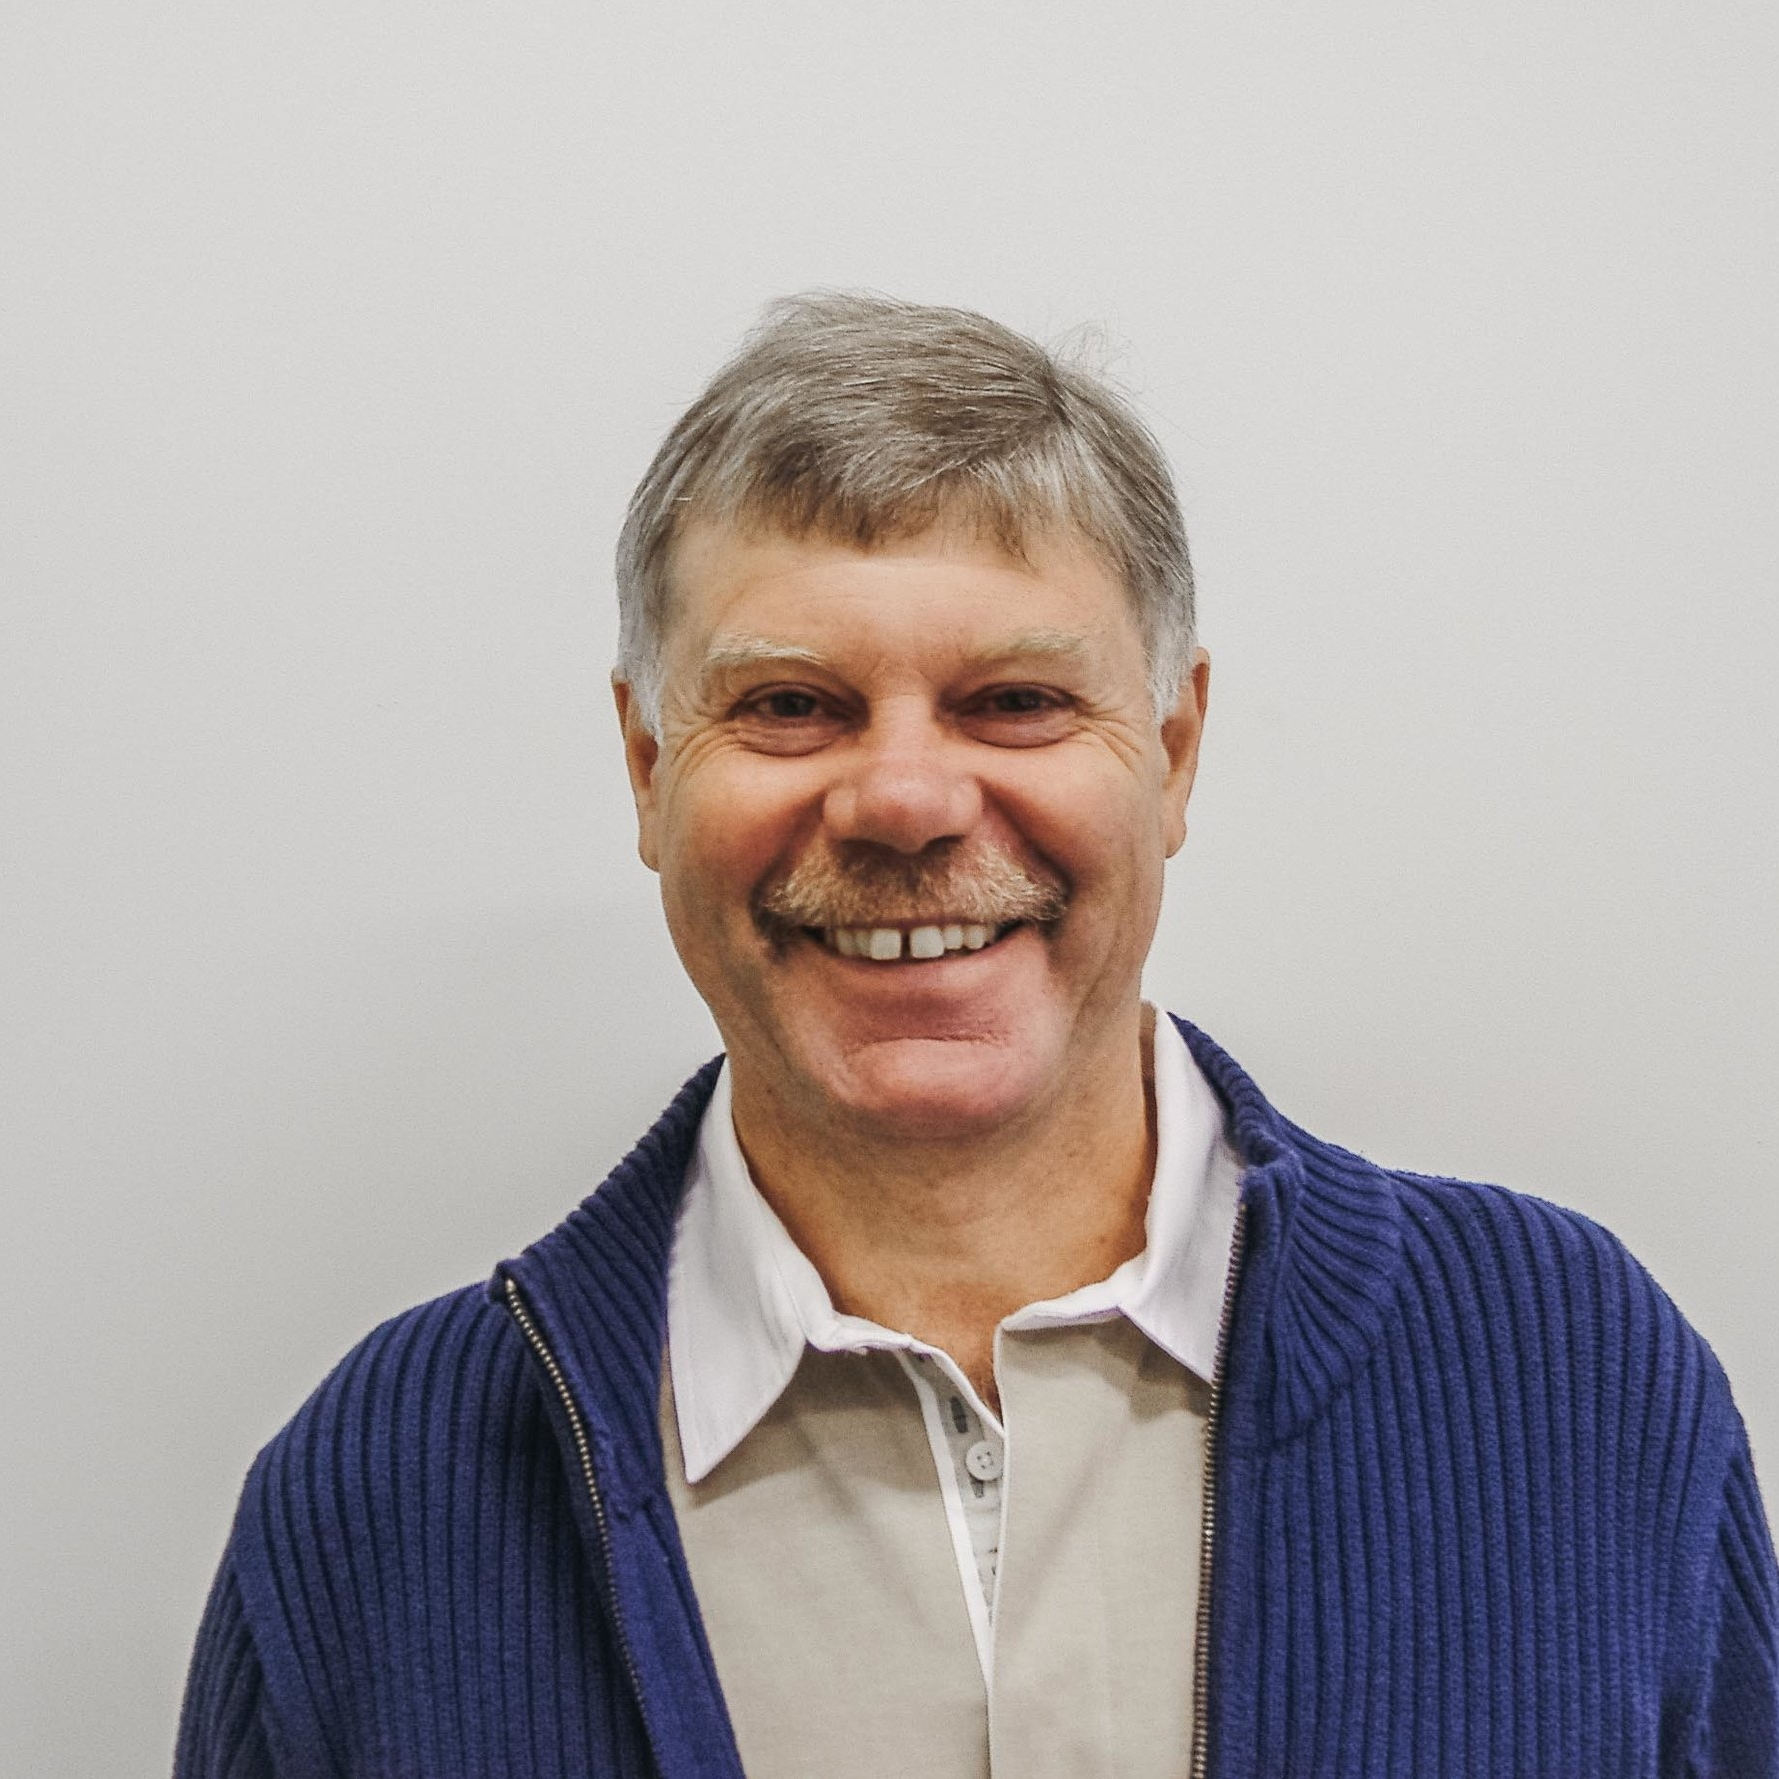 Les Ward, Vice Chair - Being the Vice Chair of Signposts has allowed me to use my expertise in business and management to benefit the community.